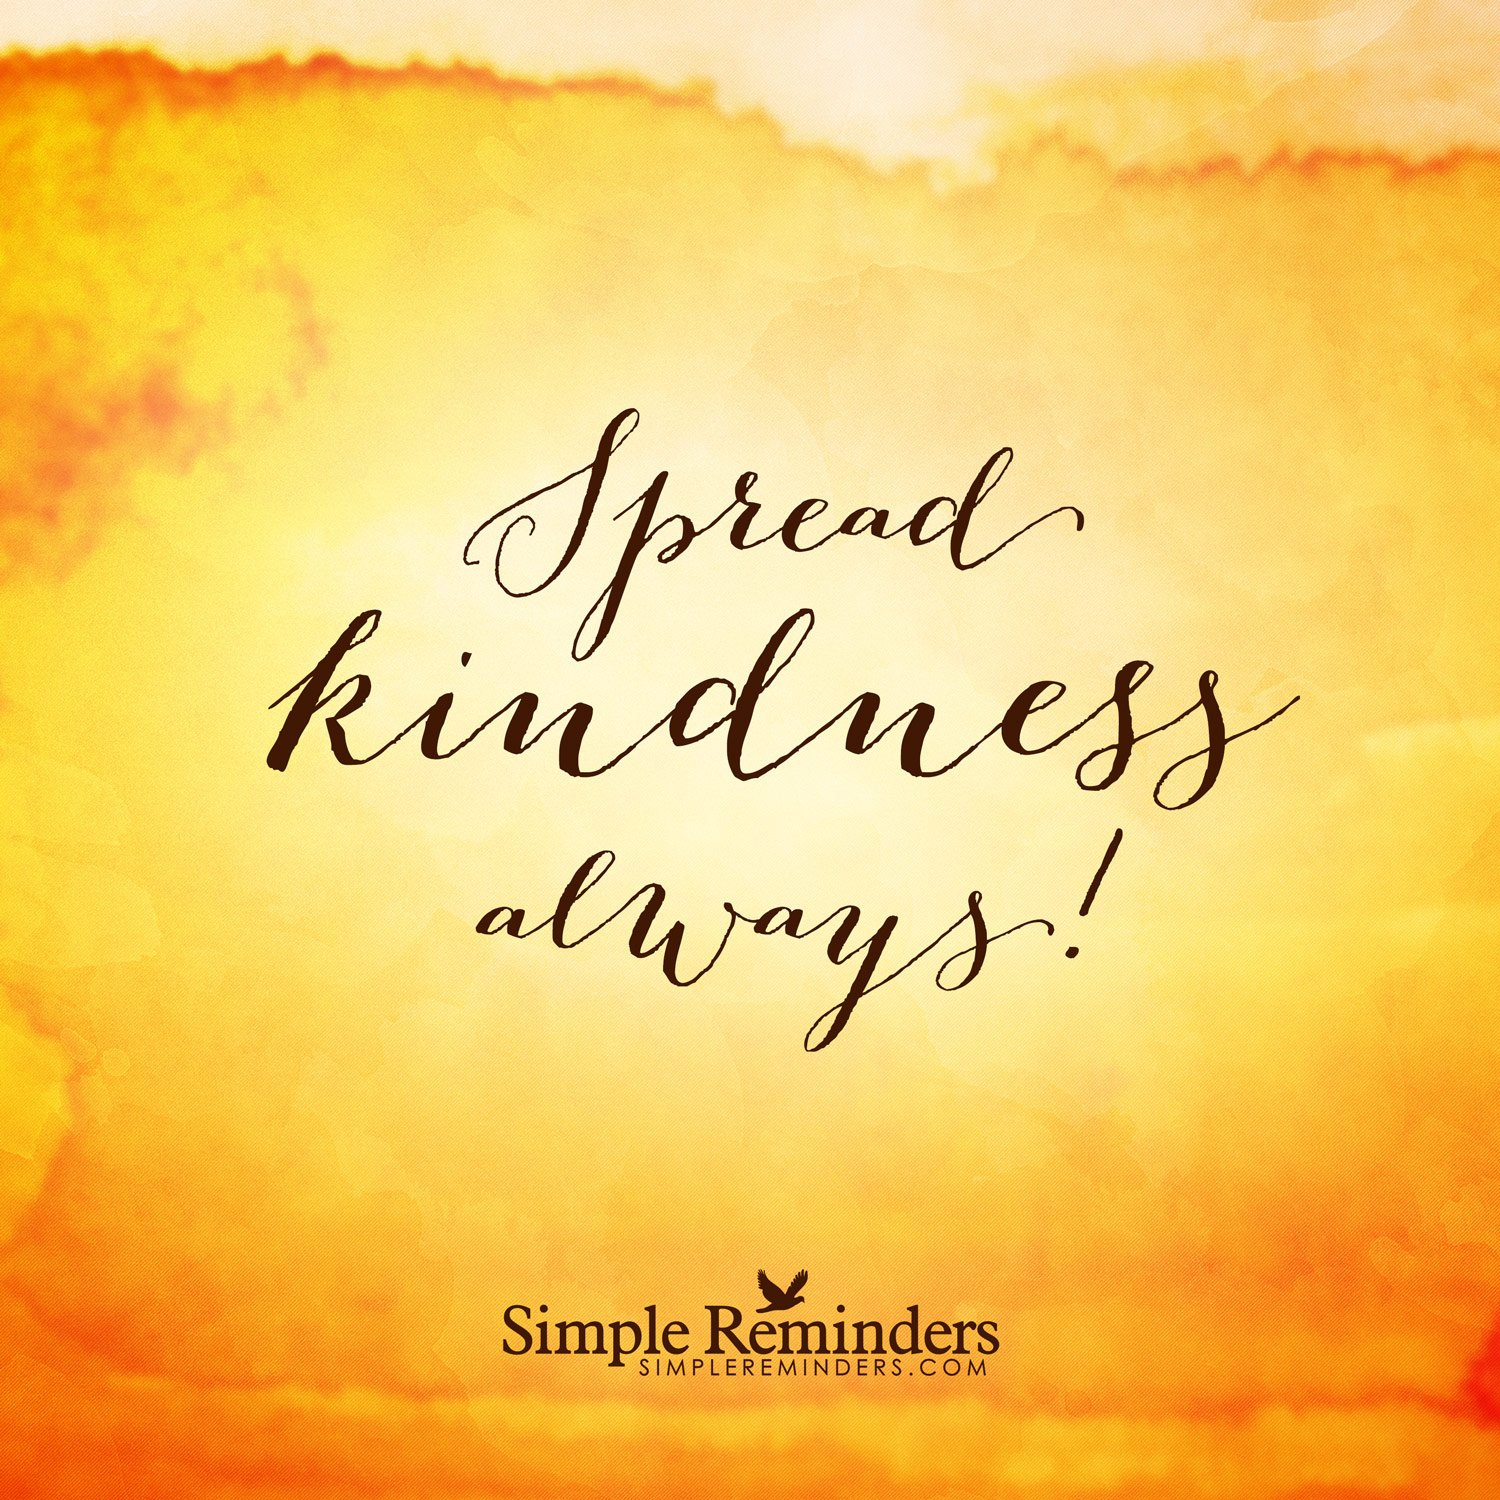 Pictures And Inspiration: Spread Kindness Quotes. QuotesGram